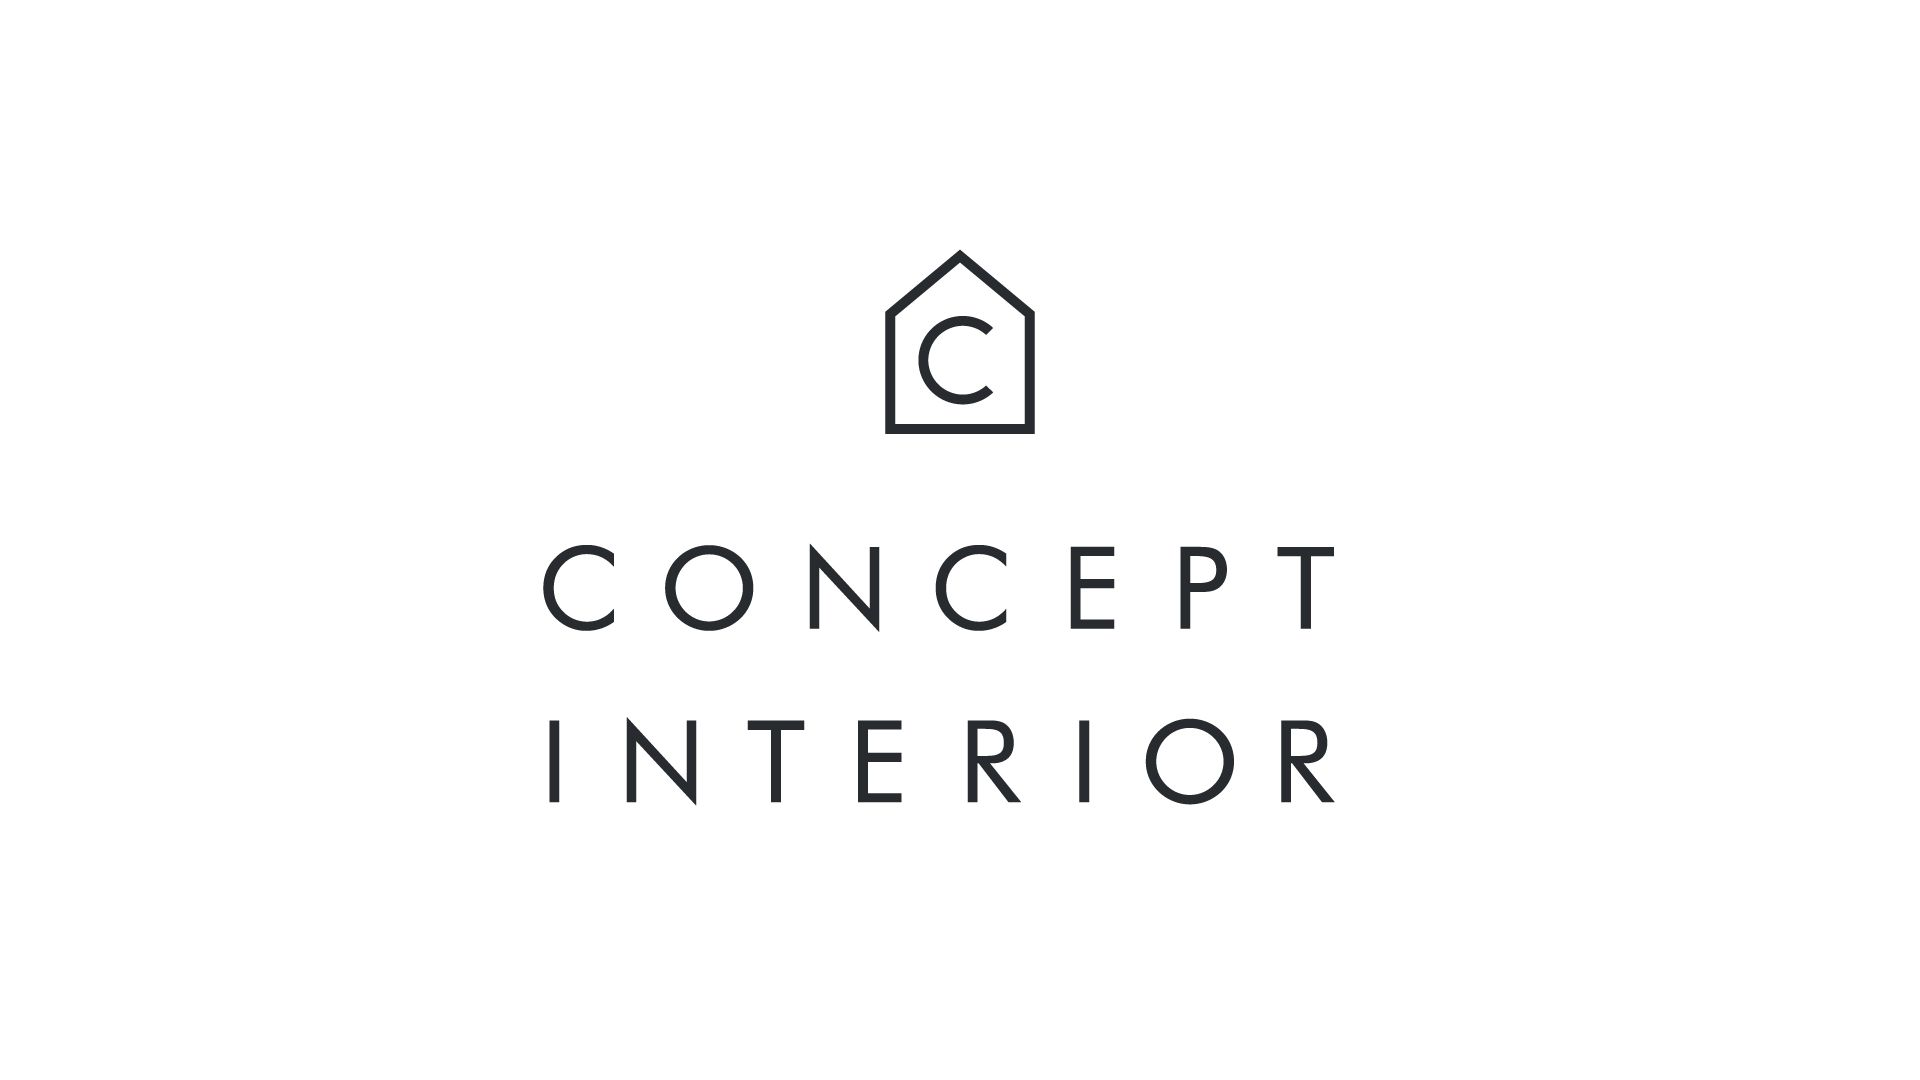 Interior design company logos home design ideas for Interior design companies